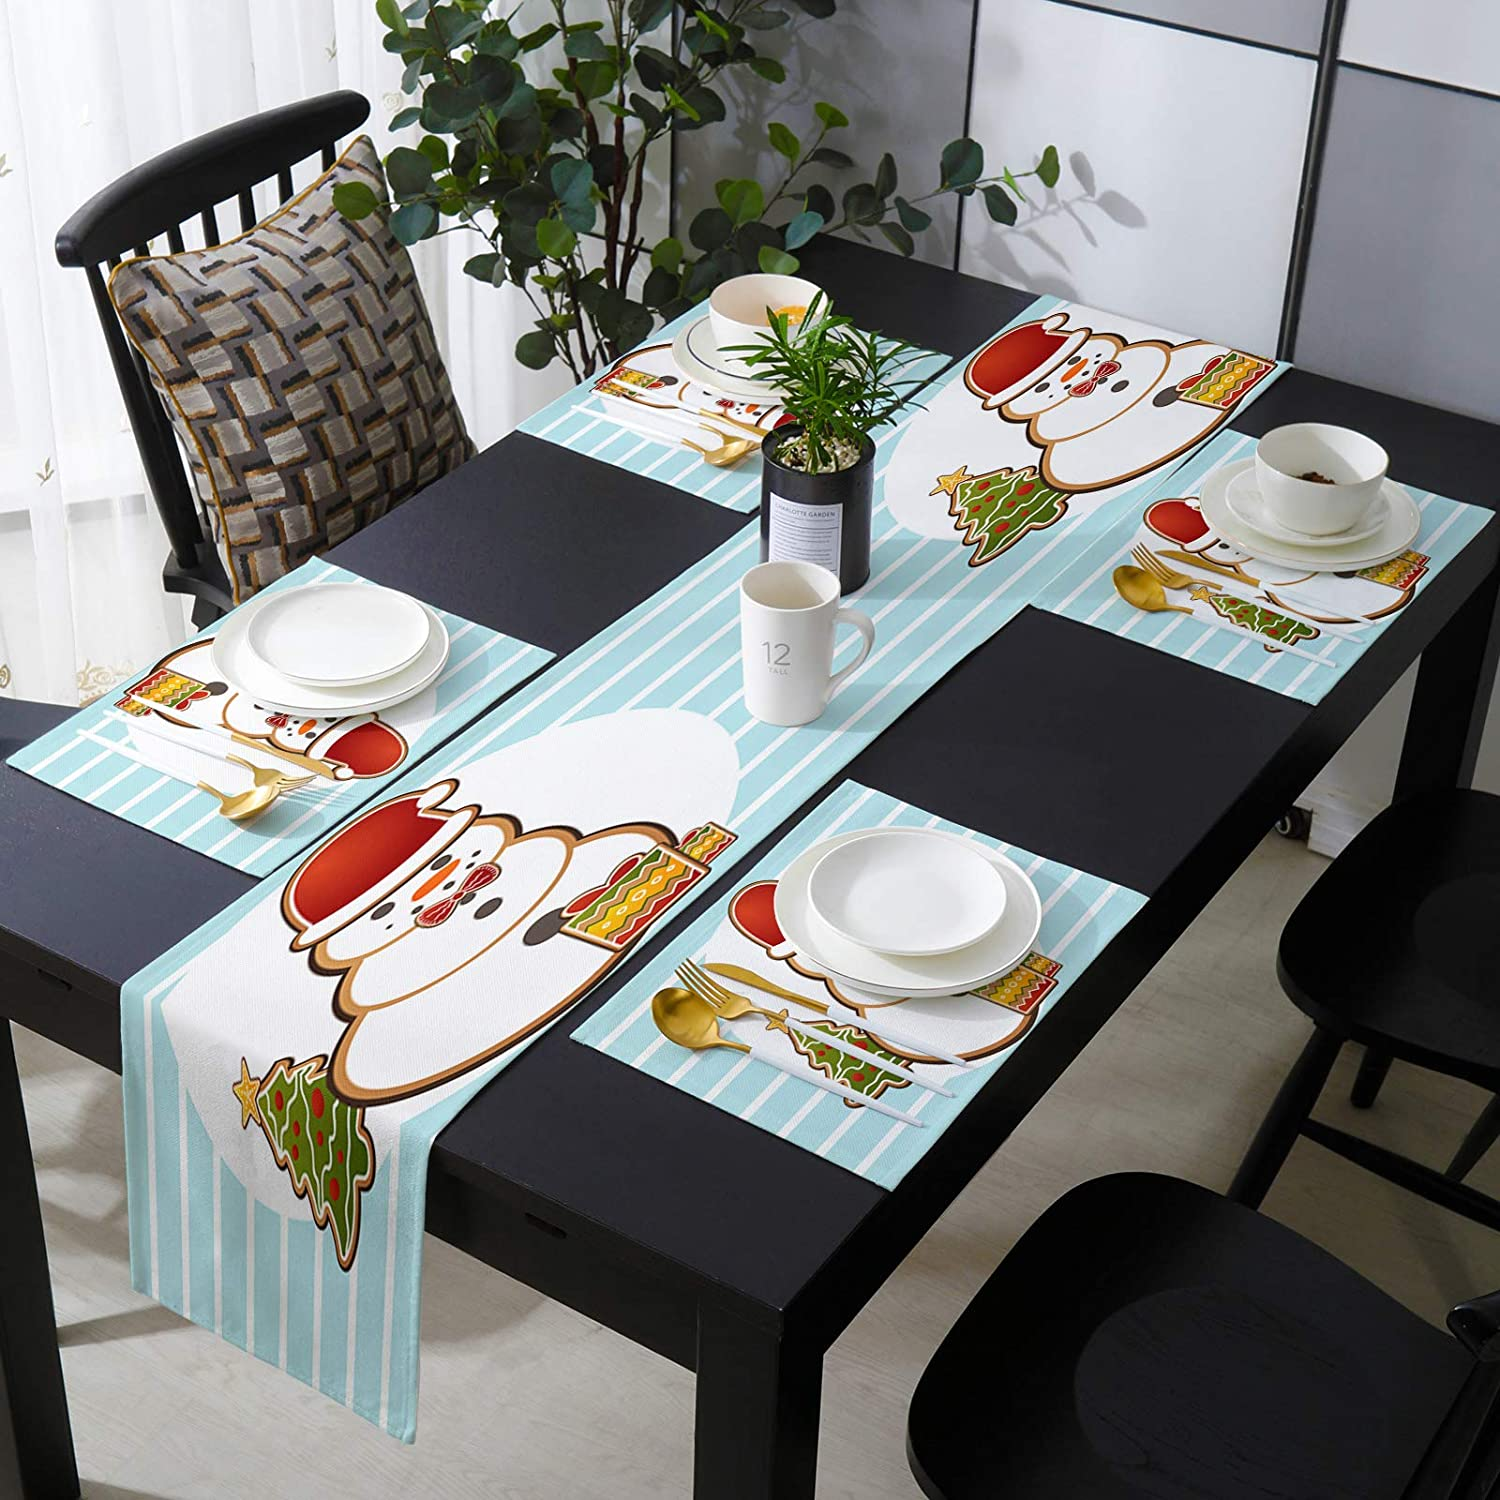 Fantasy Staring 13 x Phoenix Mall 90 Inch Set Table with Runner of Weekly update Placemats